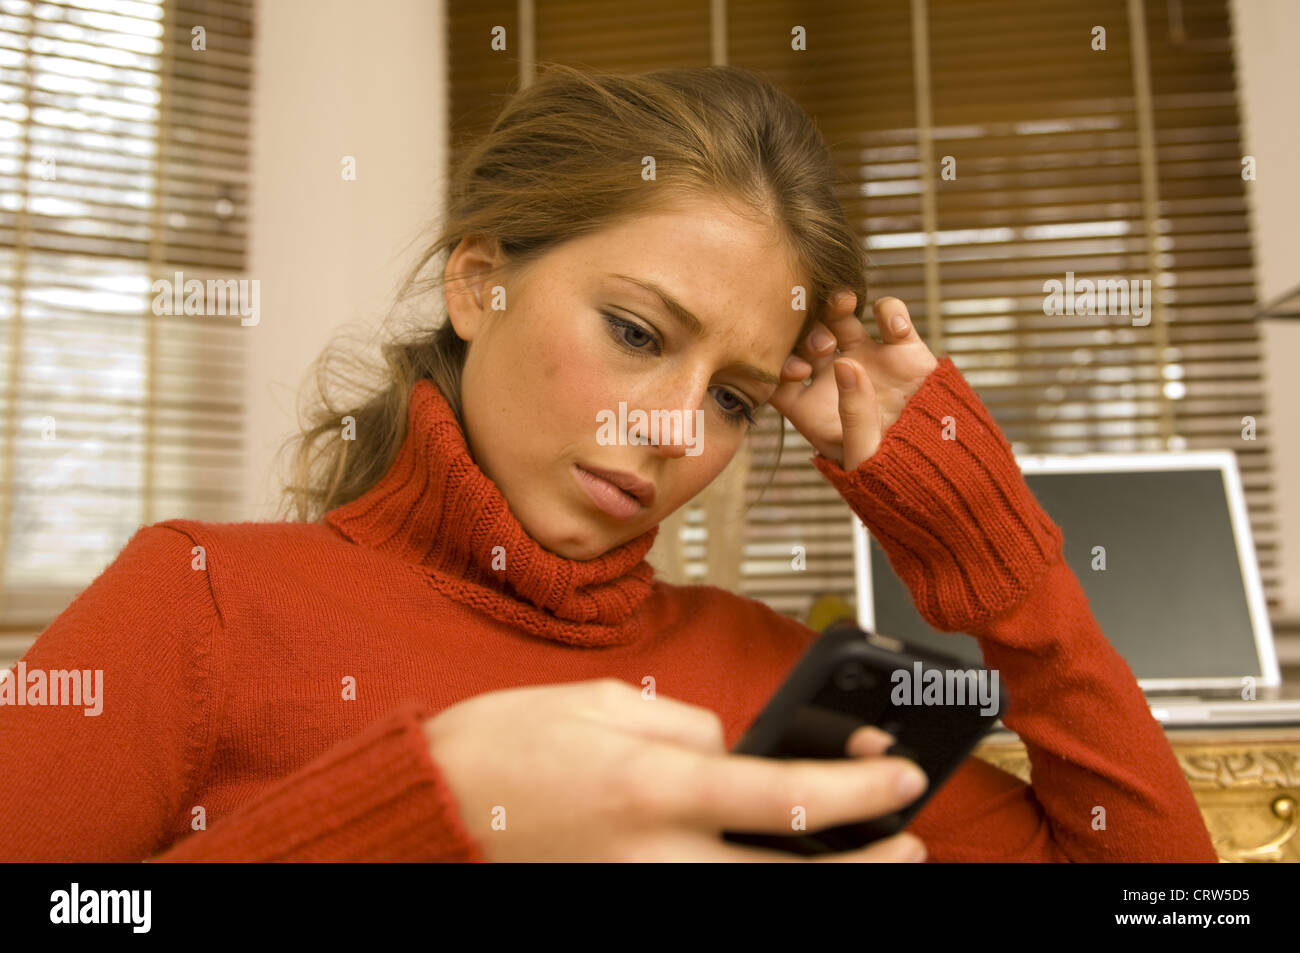 woman with cellular phone Stock Photo